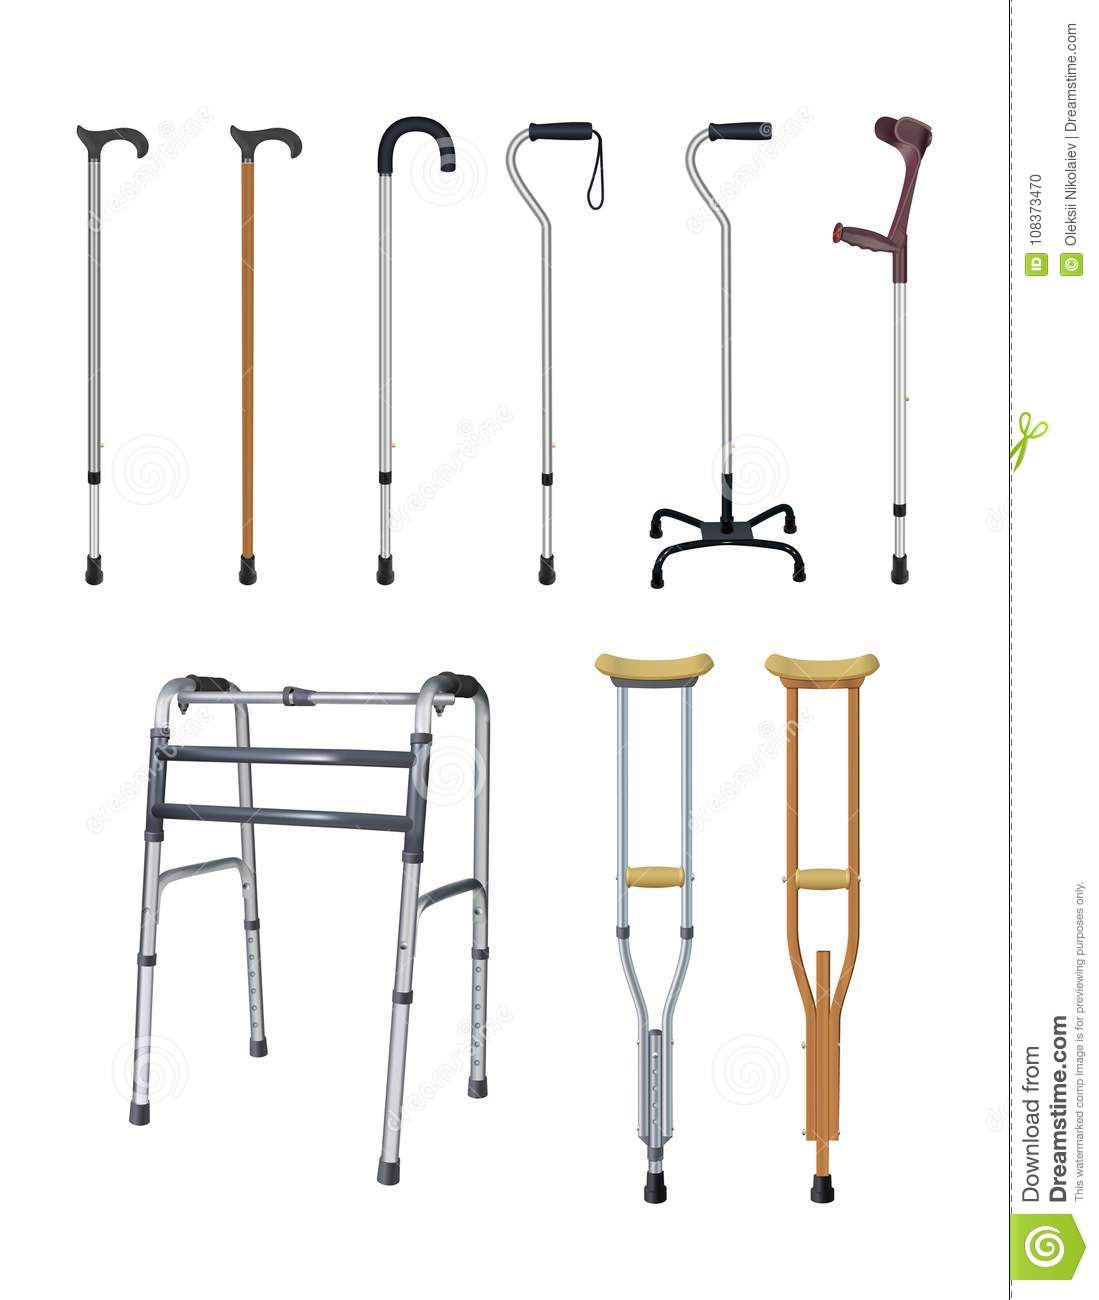 Canes, Crutches And Walkers  Set Of Special Auxiliary Means